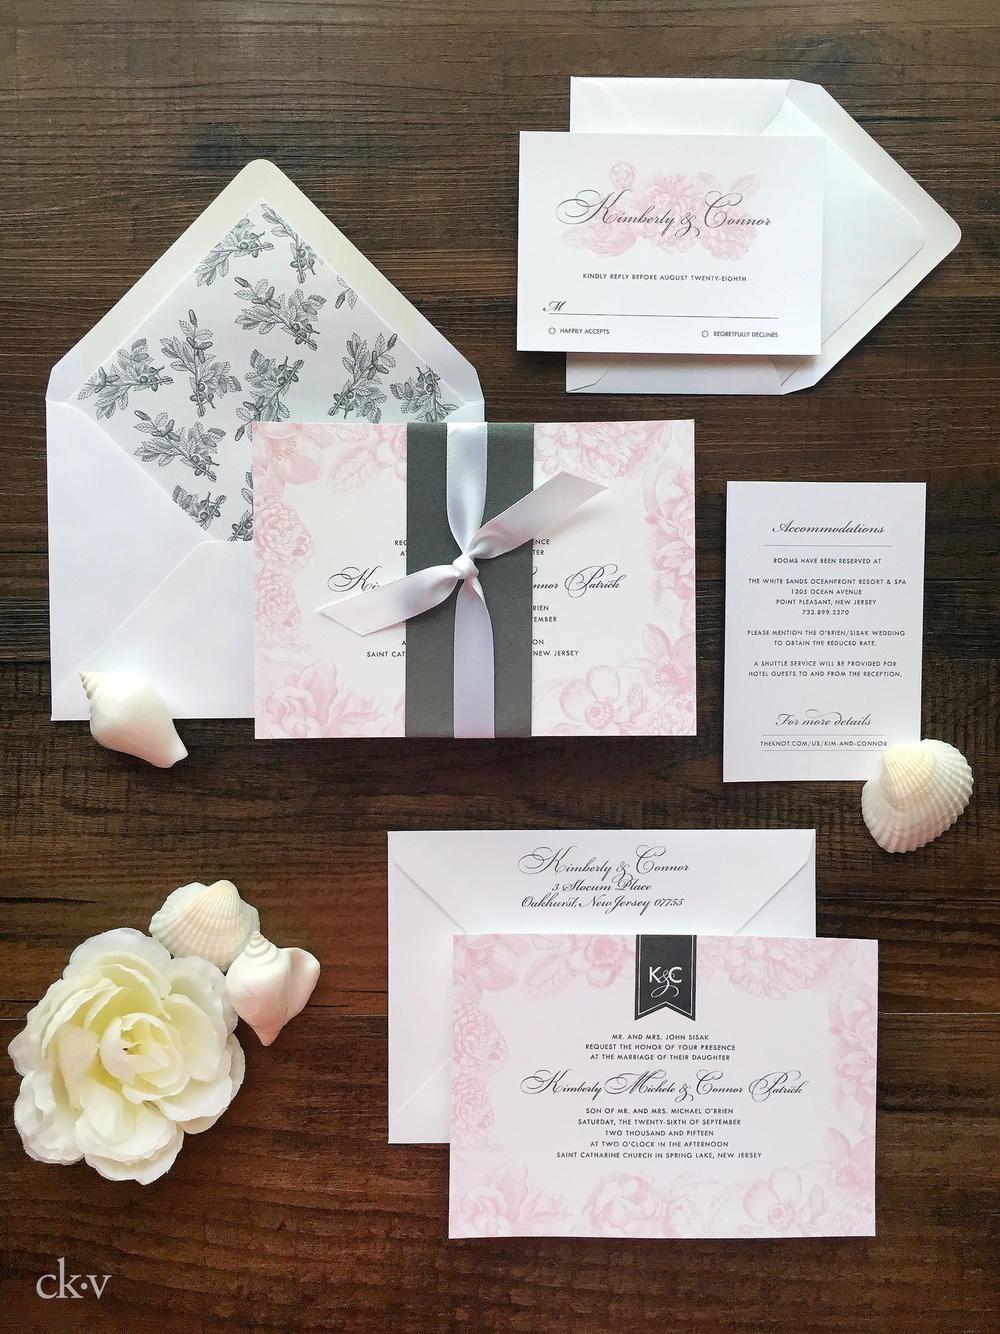 WEDDING PORTFOLIO — Catherine Kiff-Vozza, Couture Stationer